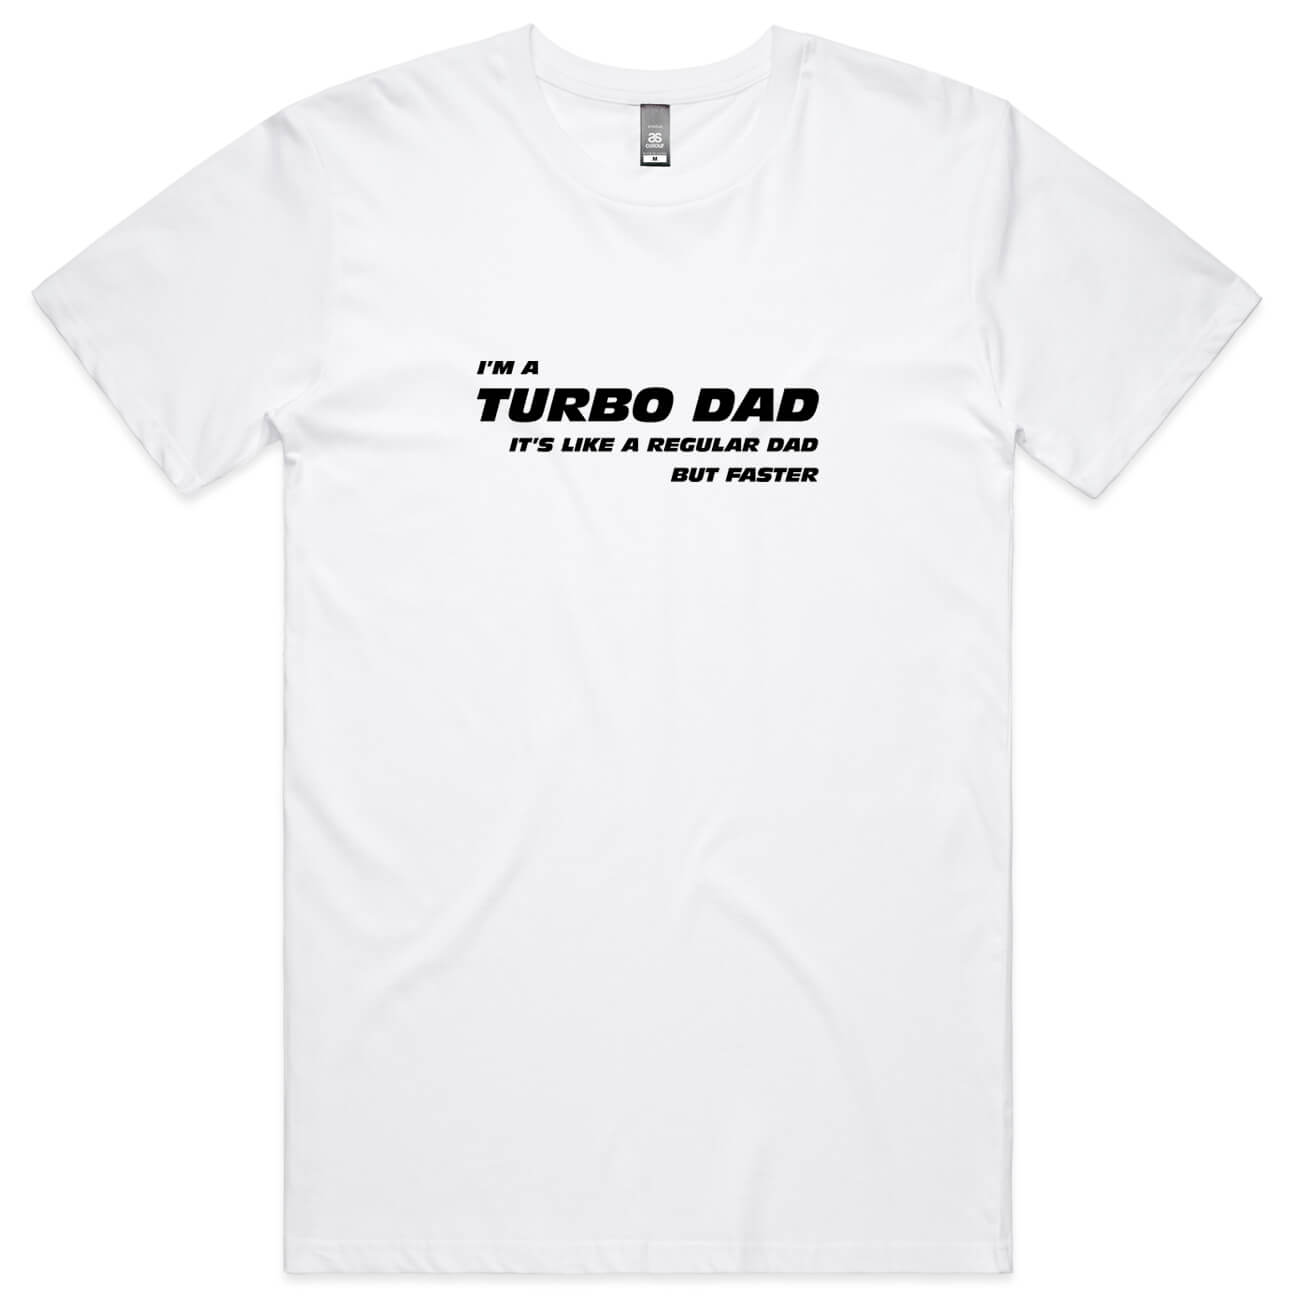 Turbo Dad T-Shirt